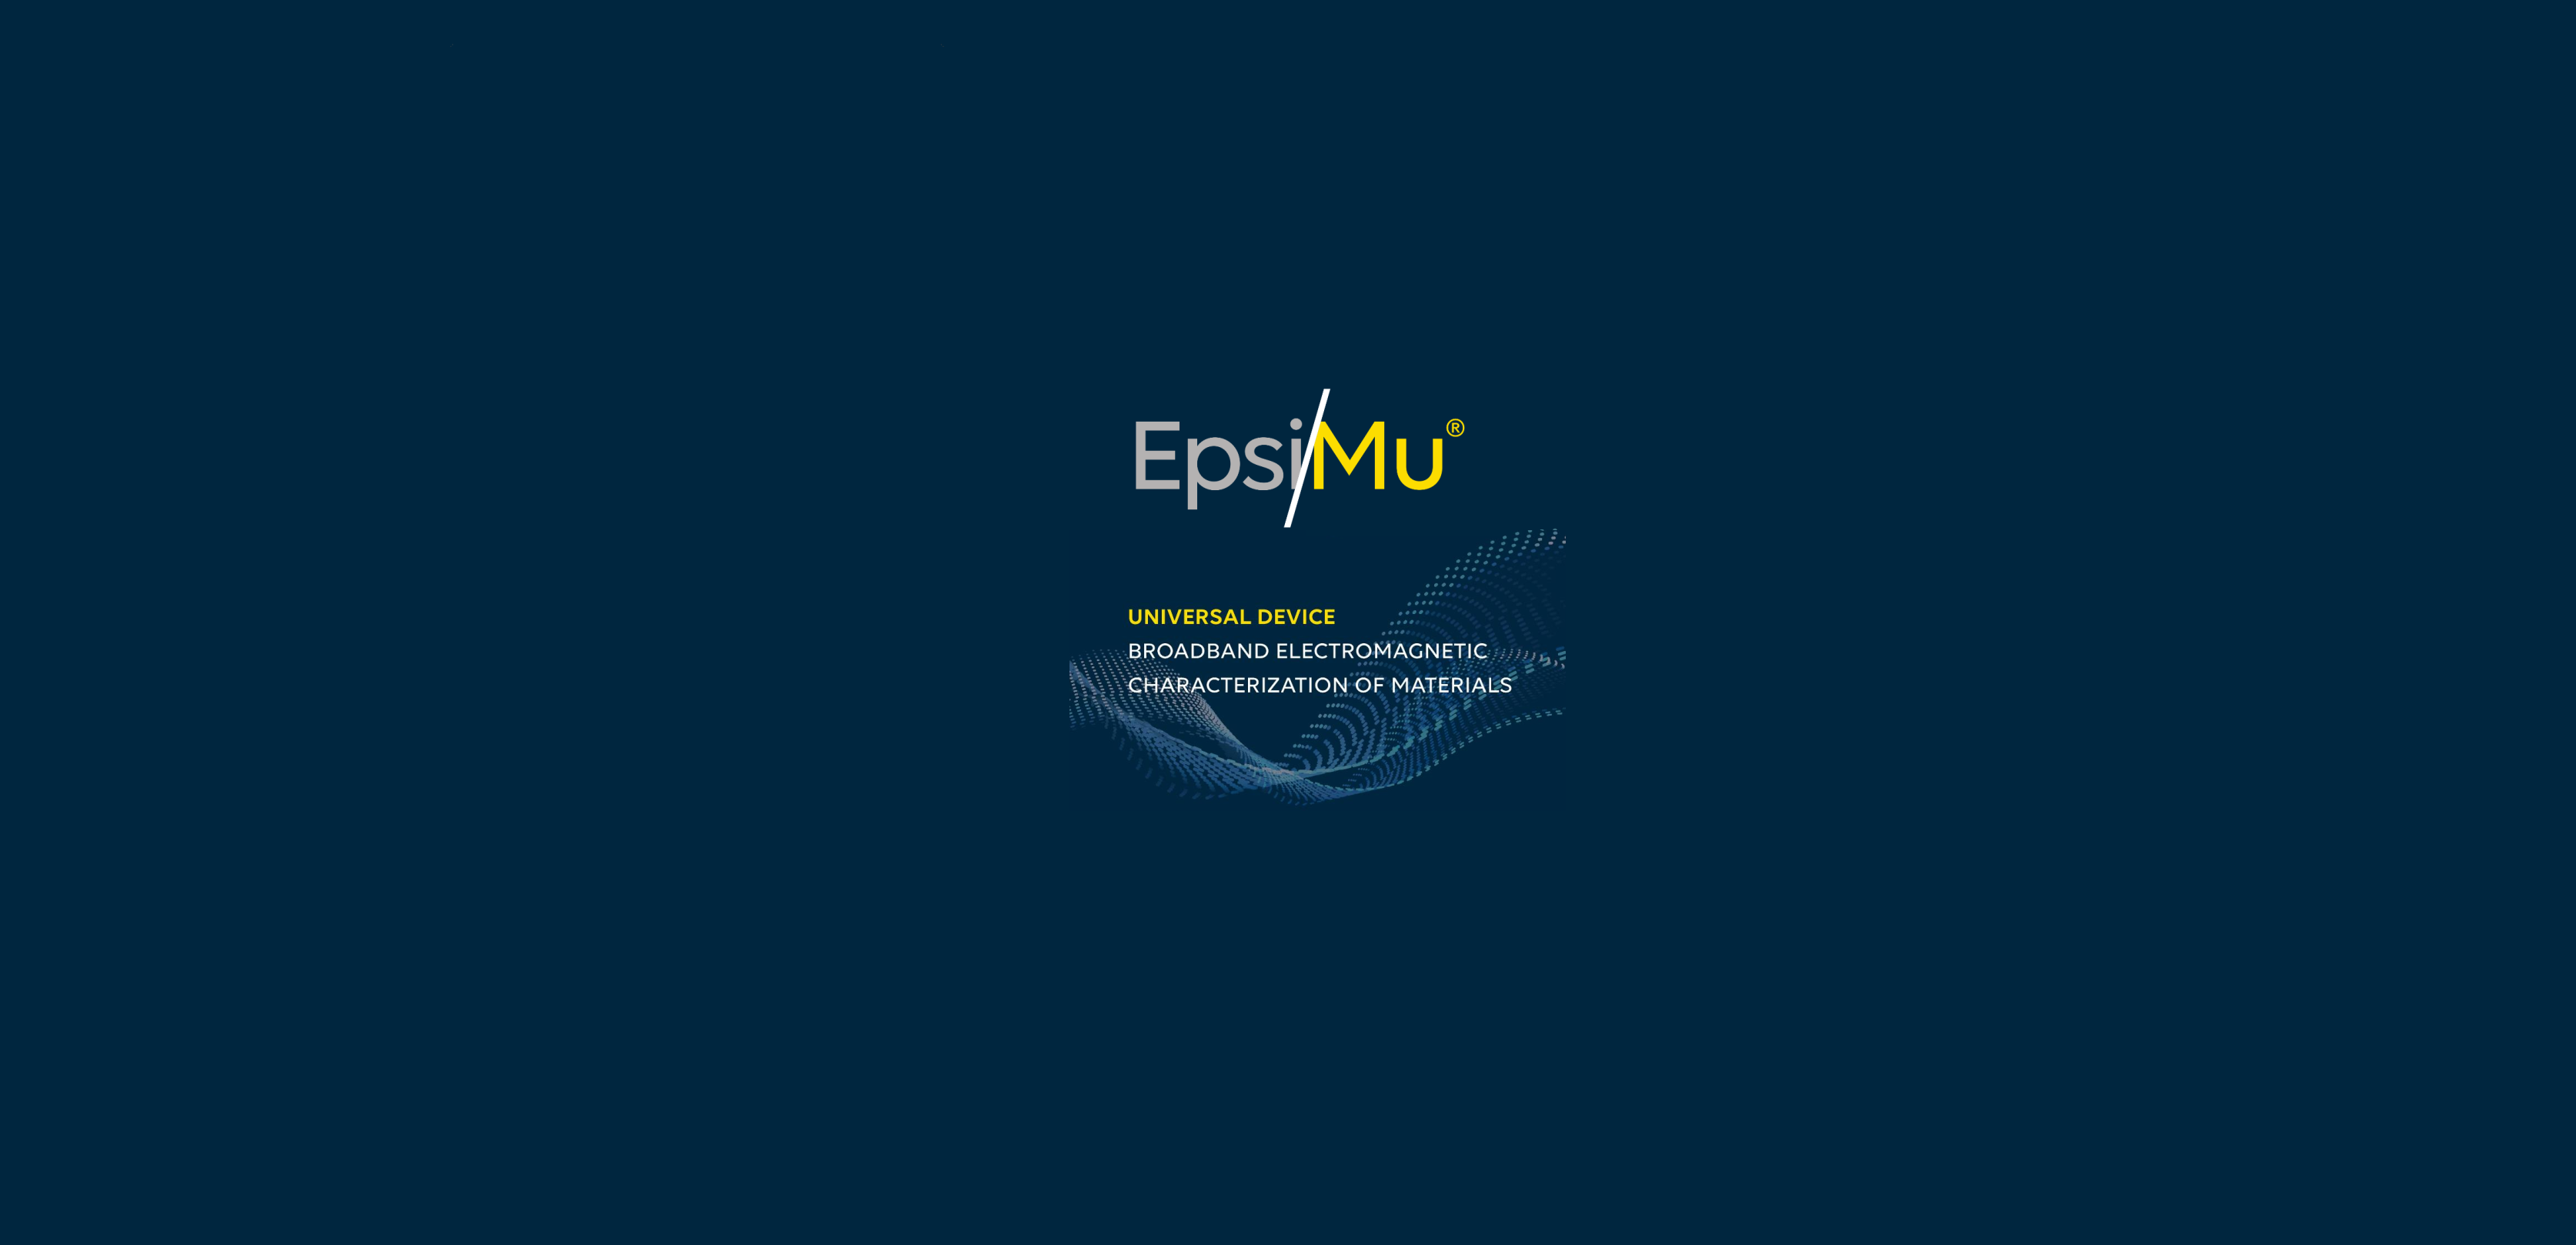 Permittivity Measurement System EpsiMu